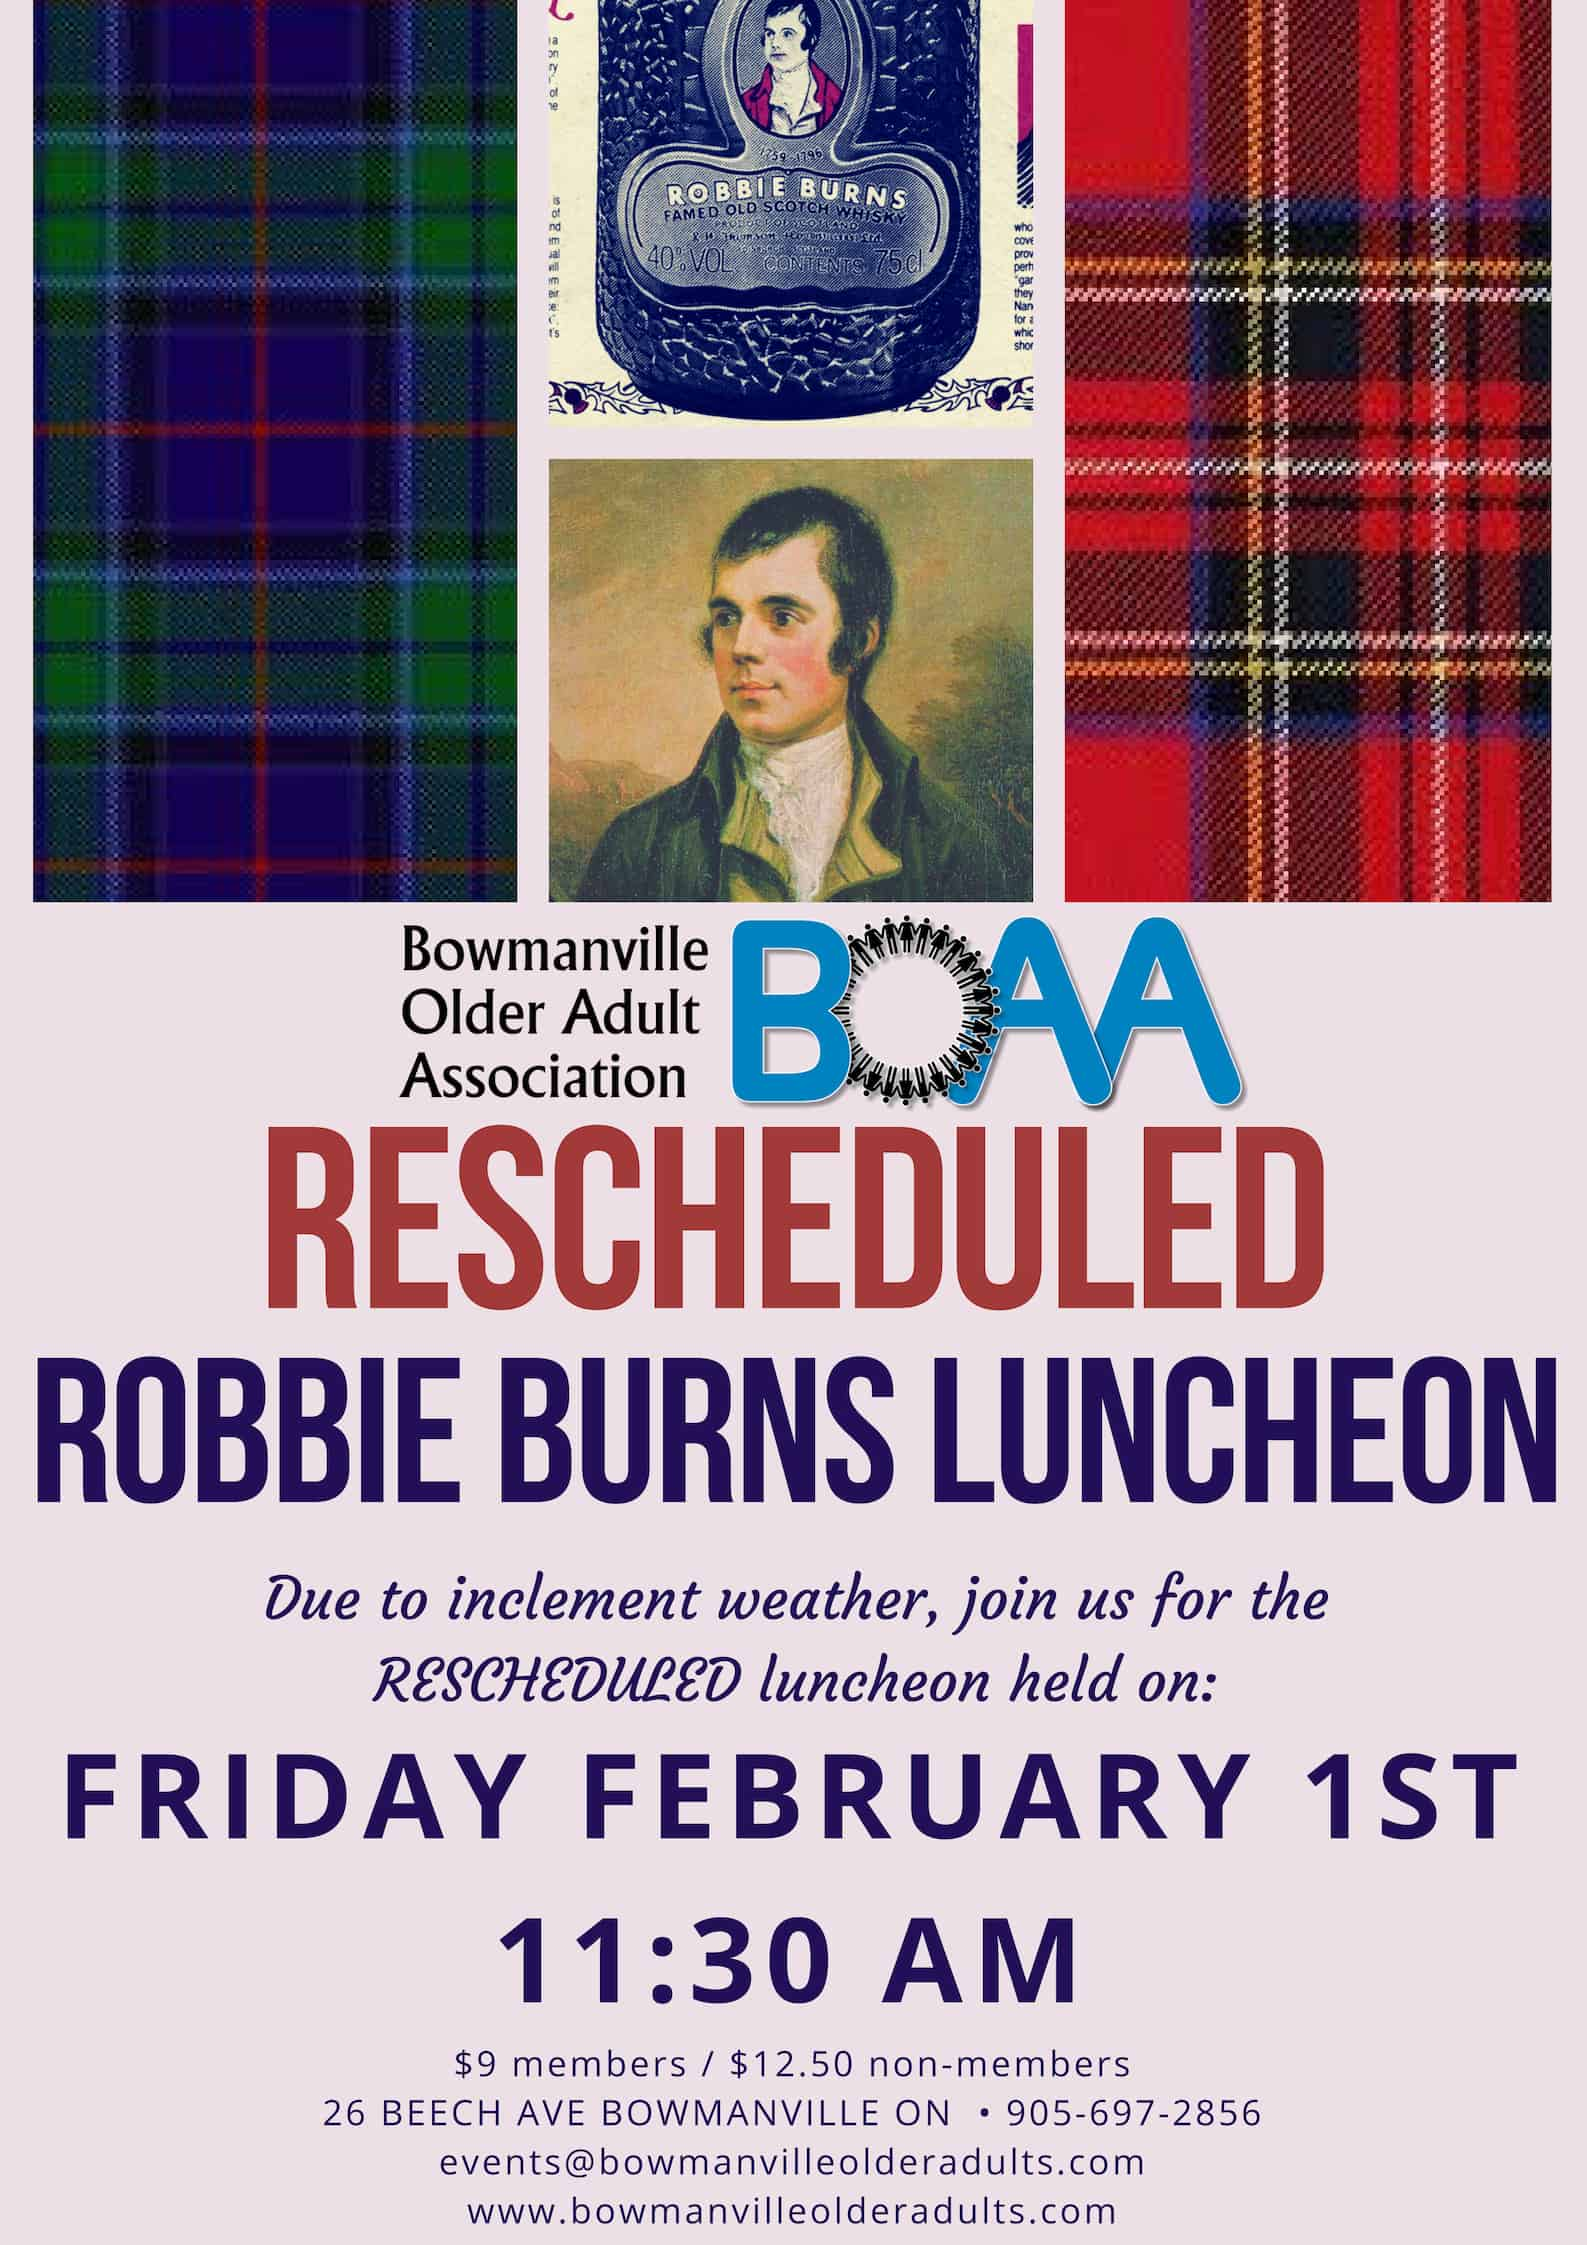 BOAA Robbie Burns Event RESCHEUDLED to Friday Feb 1st